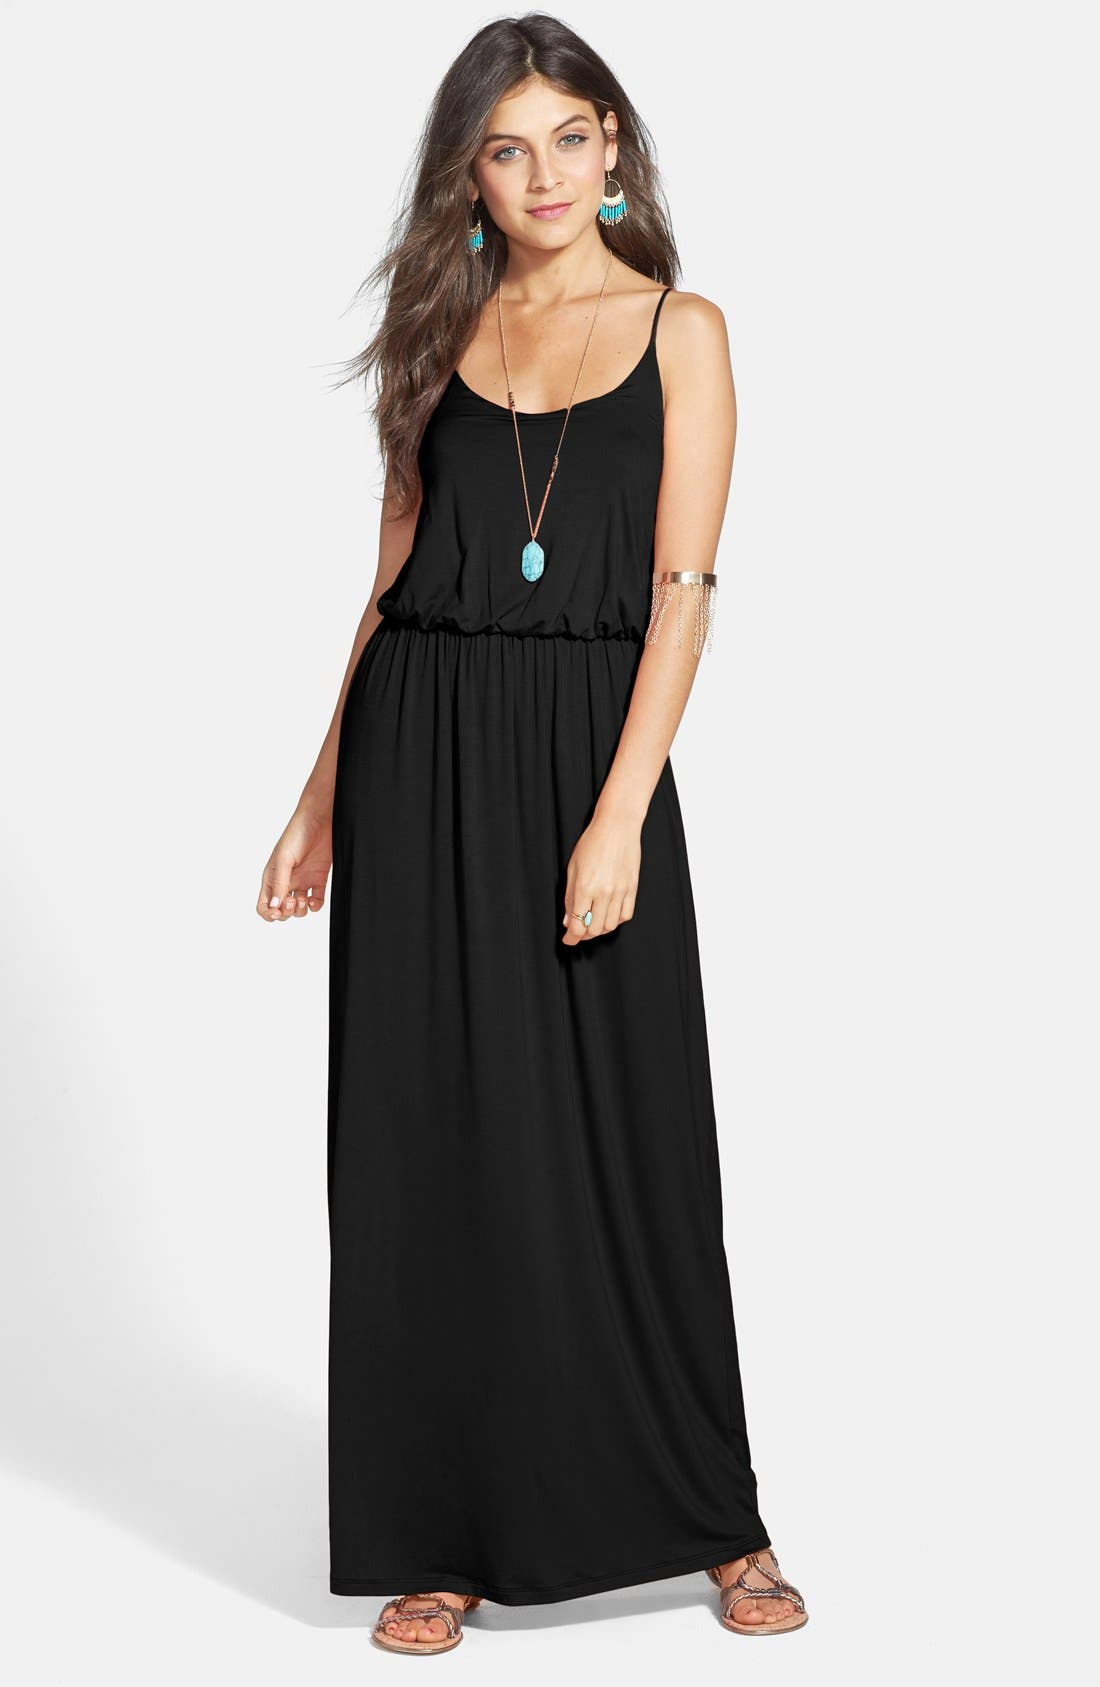 Women's Black Tank Dresses | Nordstrom